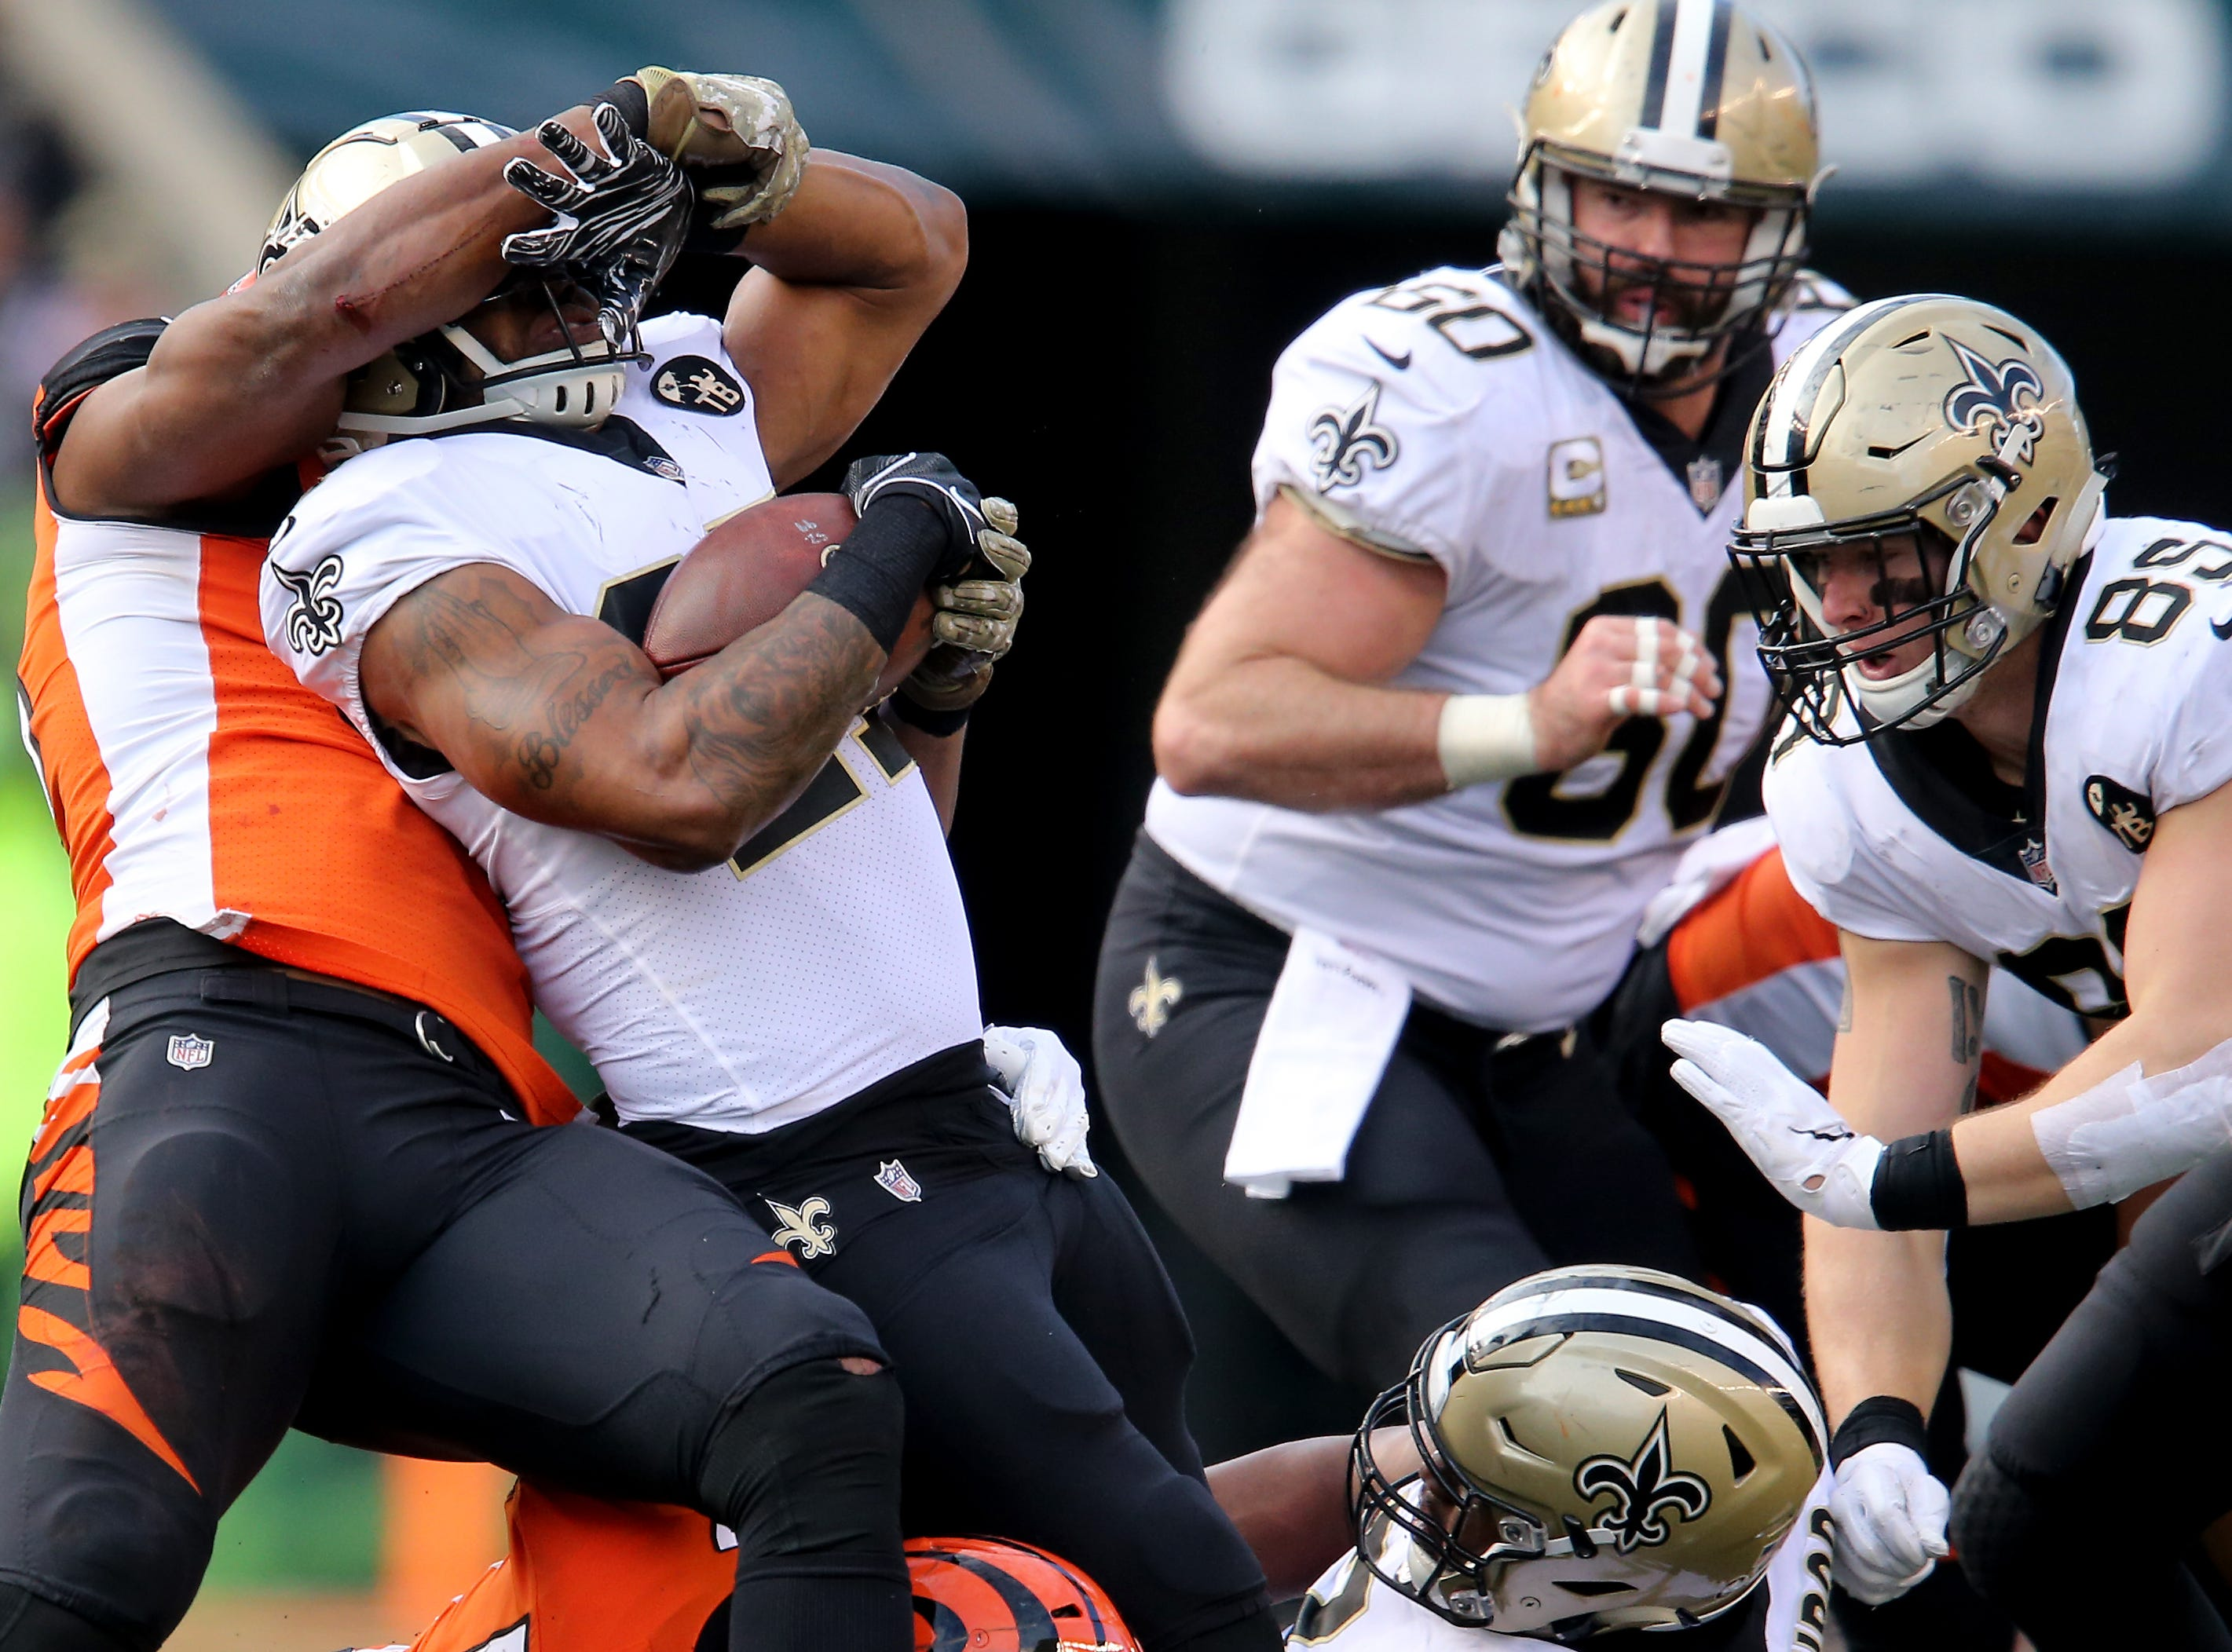 New Orleans Saints running back Dwayne Washington (27) tries to push Cincinnati Bengals defensive end Michael Johnson (90) hand away on a carry in the fourth quarter of a Week 10 NFL game between the New Orleans Saints and the Cincinnati Bengals, Sunday, Nov. 11, 2018, at Paul Brown Stadium in Cincinnati. The New Orleans Saints won 51-14.